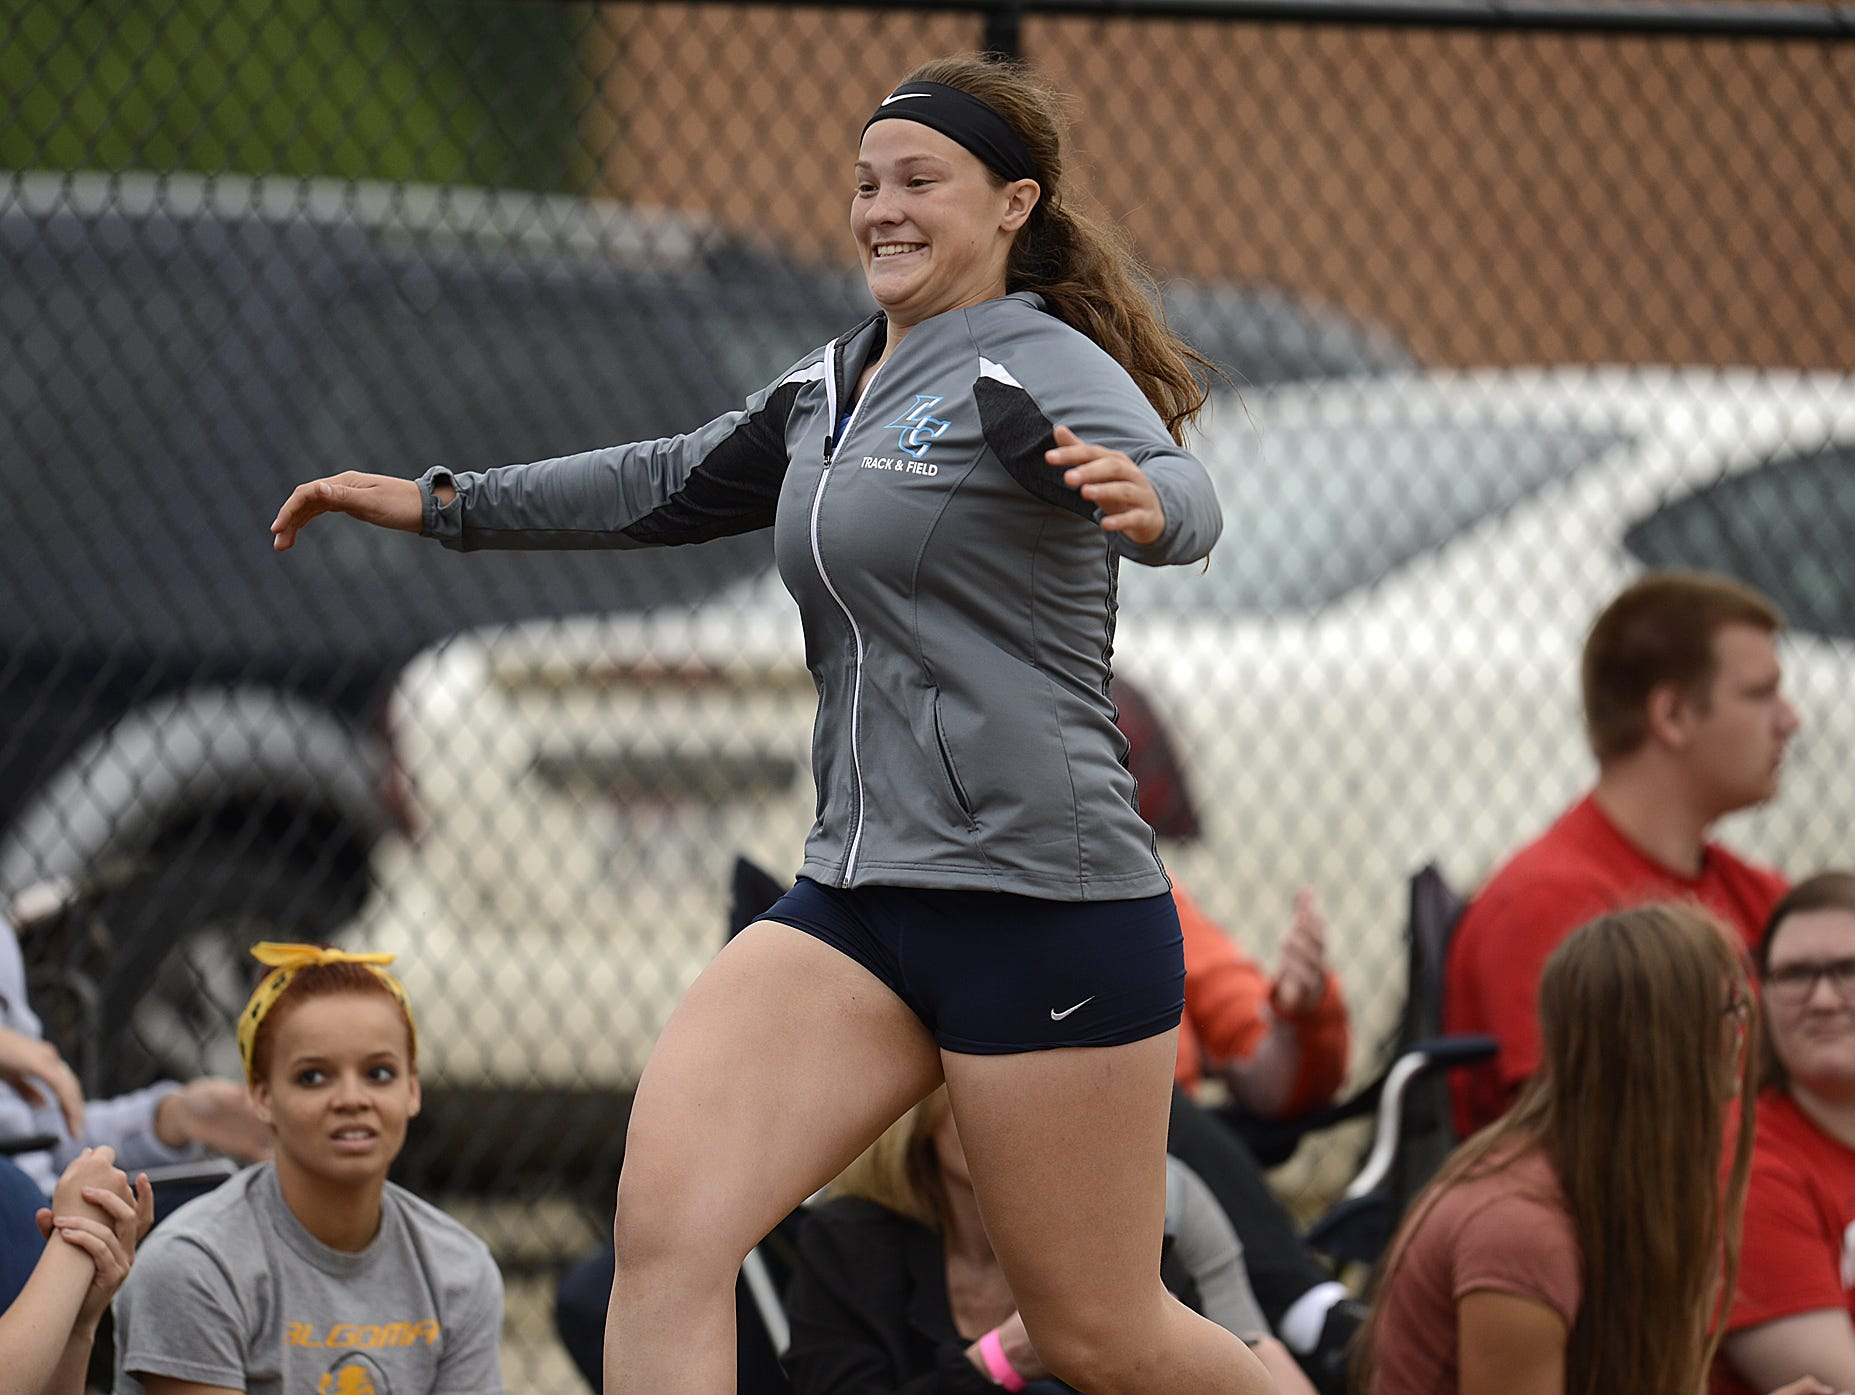 Little Chute's Tess Keyzers celebrates after winning the Division 2 shot put during Friday's WIAA state track and field meet at Veterans Memorial Stadium Complex in La Crosse.